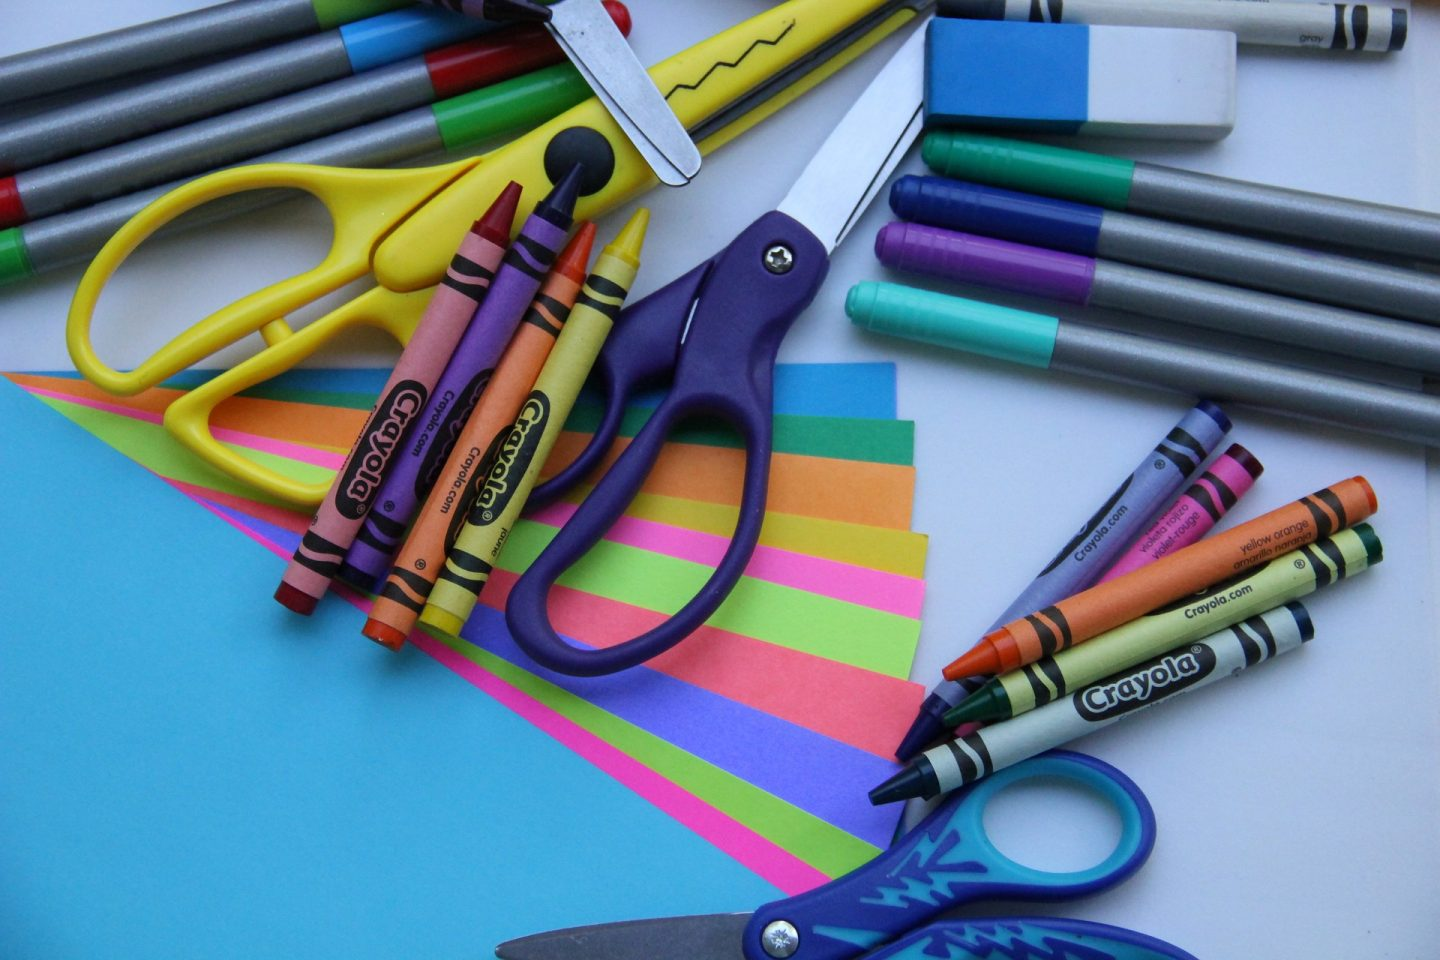 Childs scissors pens crayons and paper, how to help develop your child's fine motor skills